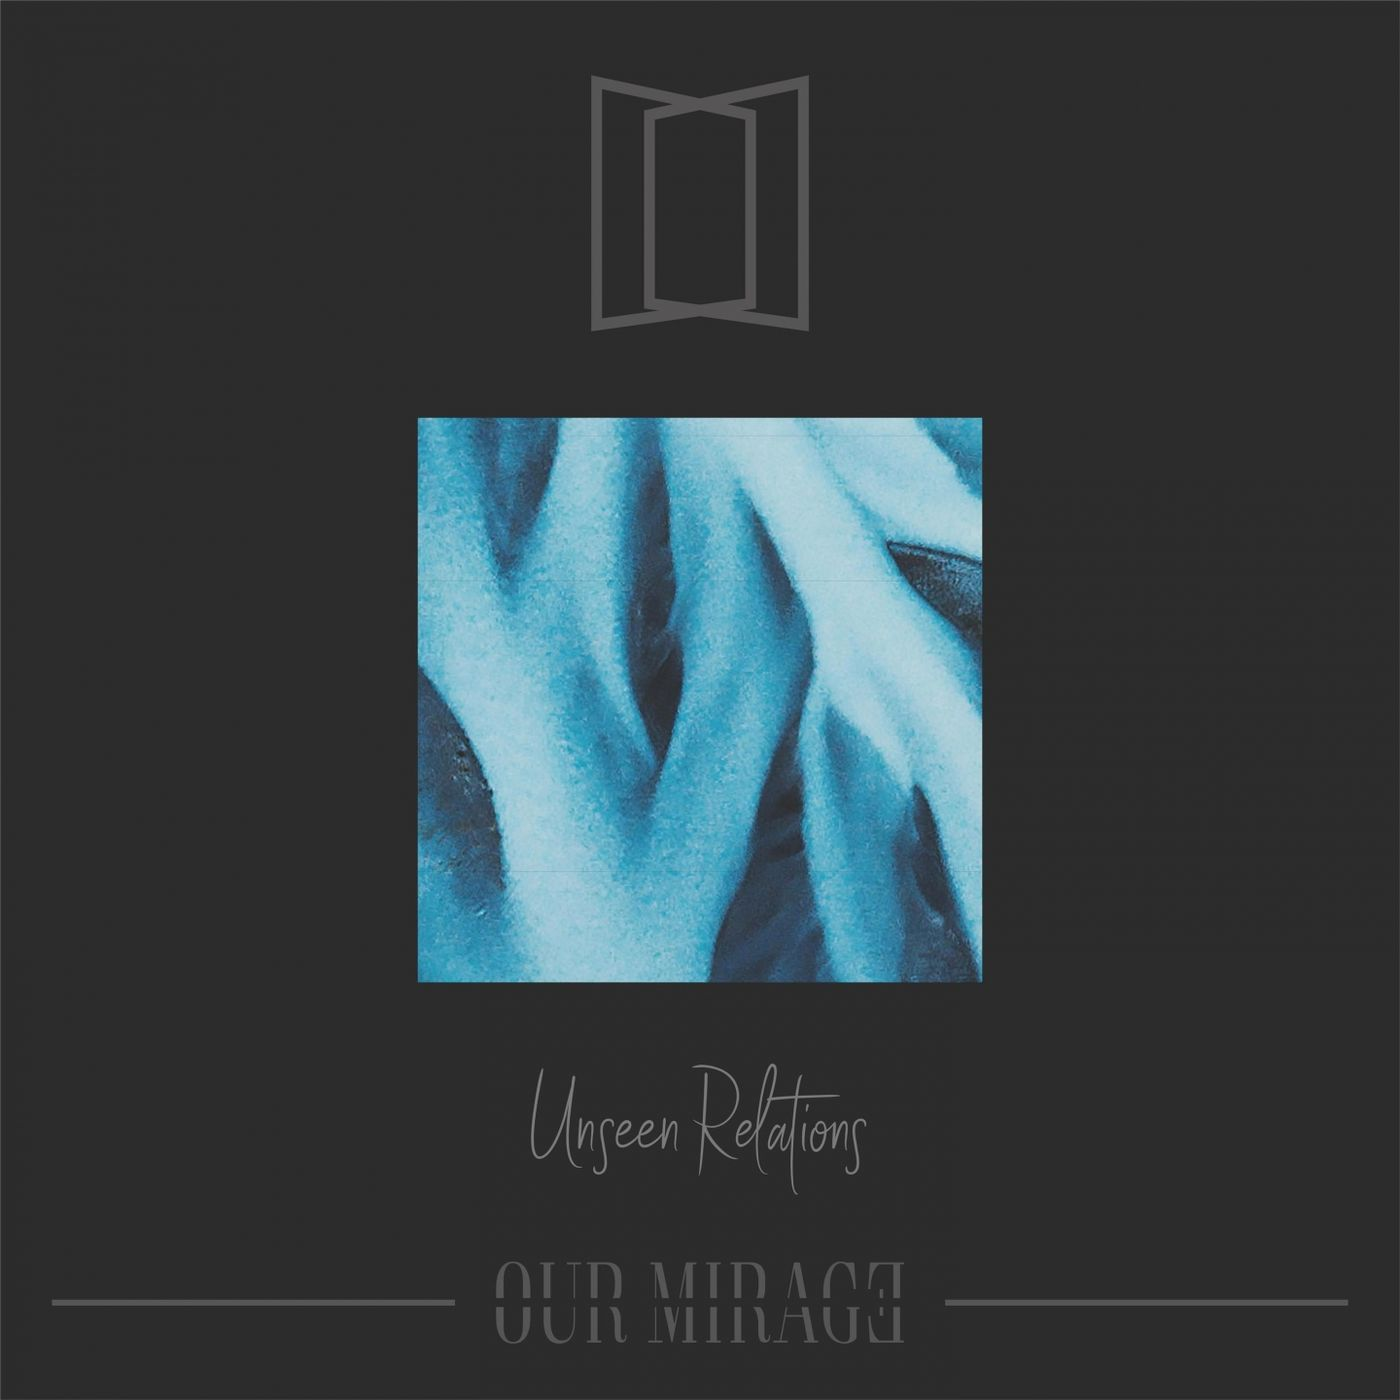 Our Mirage - Unseen Relations (2020)